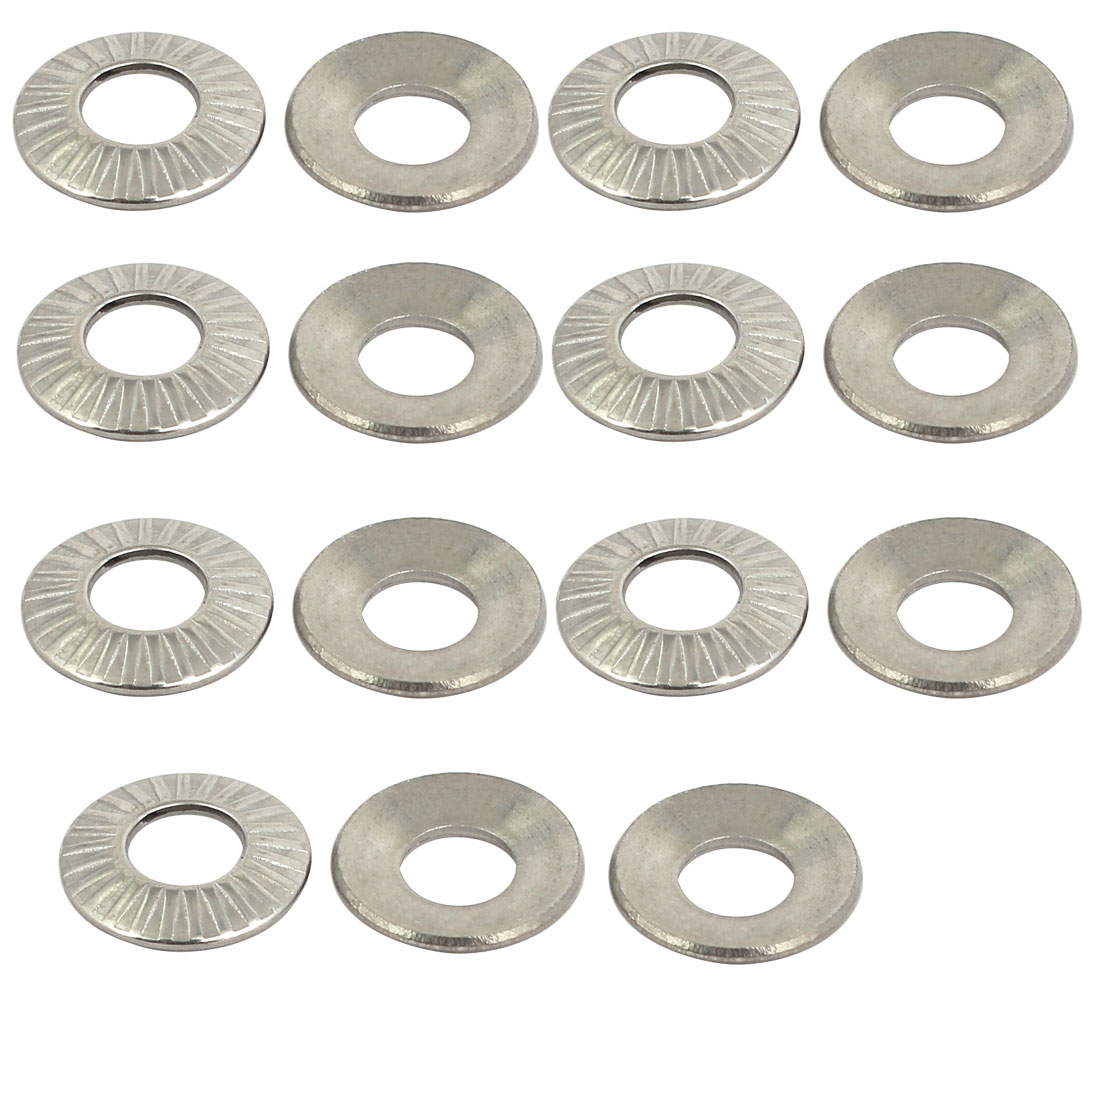 M5 304 Stainless Steel Industrial Locking Washer Silver Tone 15pcs